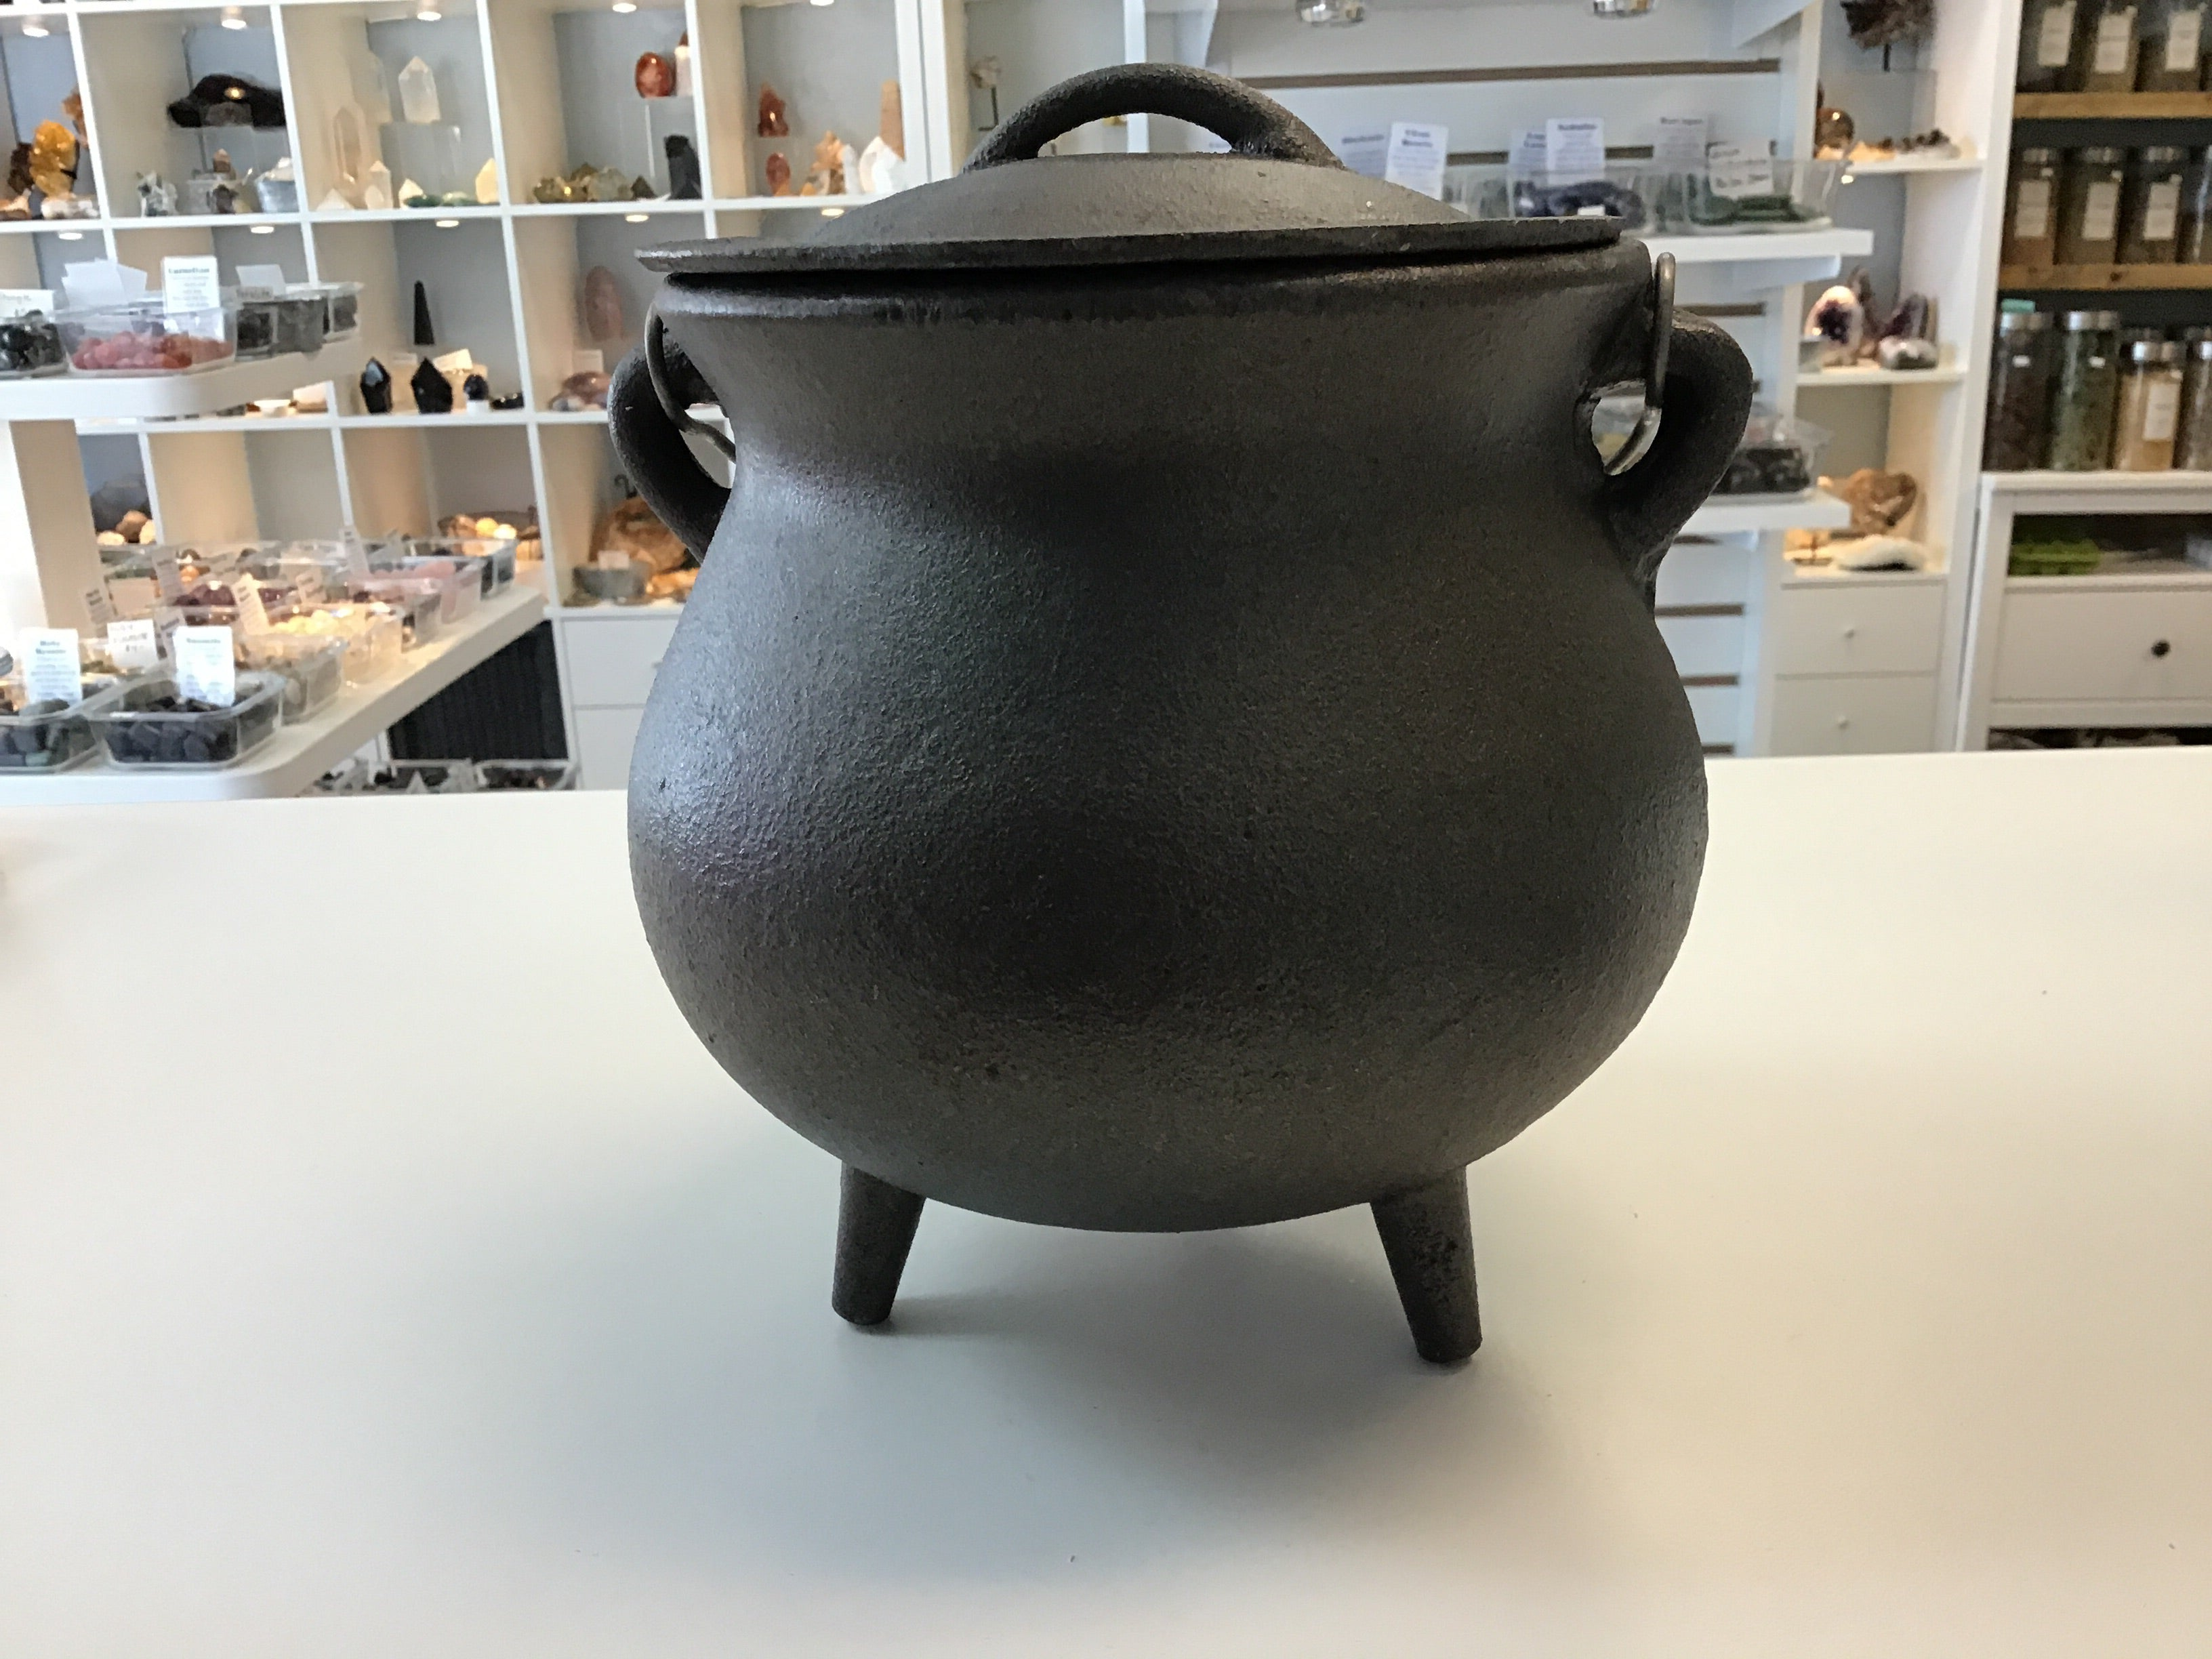 Large 7 inch cauldron